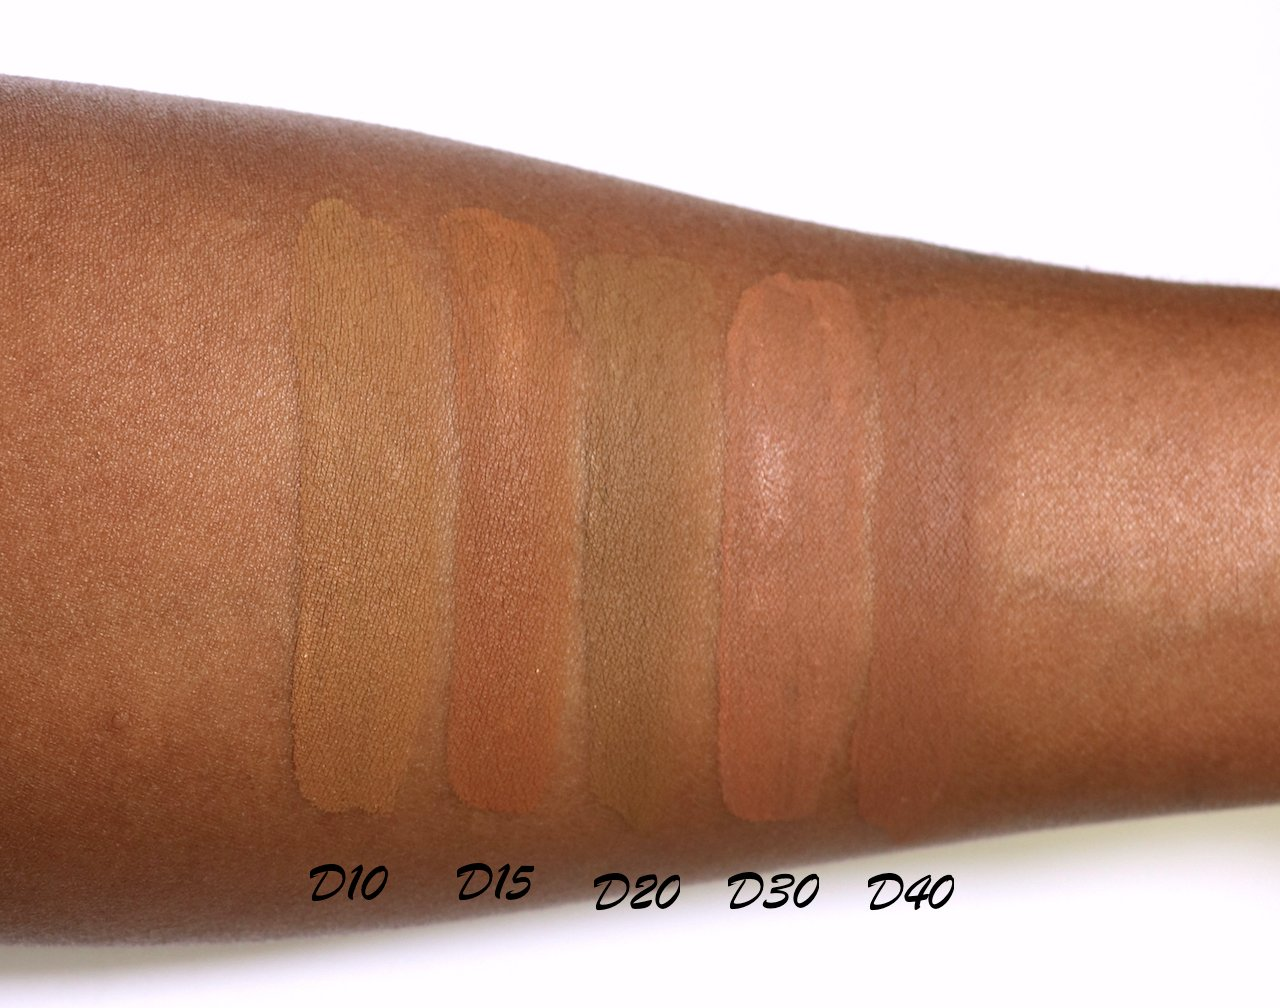 CoverGirl Trublends Matte Made foundation swatches D10-D40